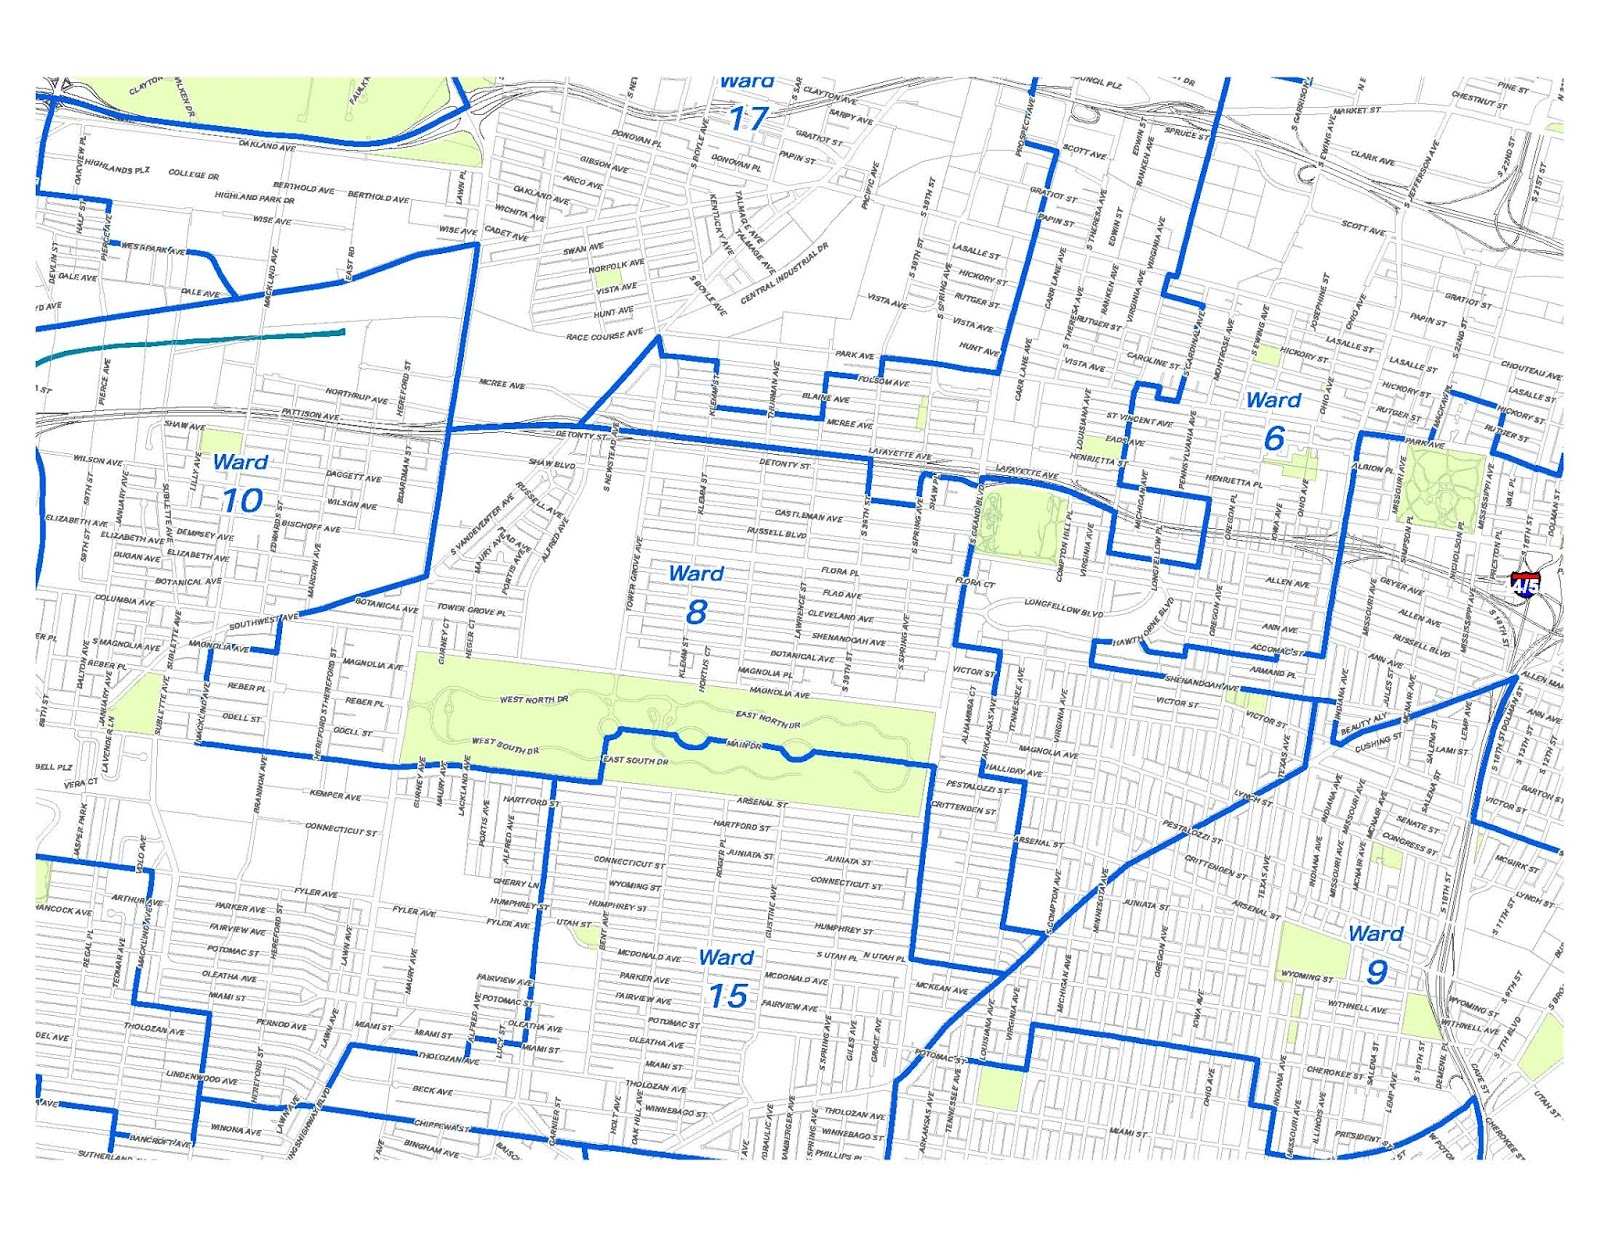 8th Ward Dems StL: Map of the 8th Ward, City of St. Louis (August 2011)